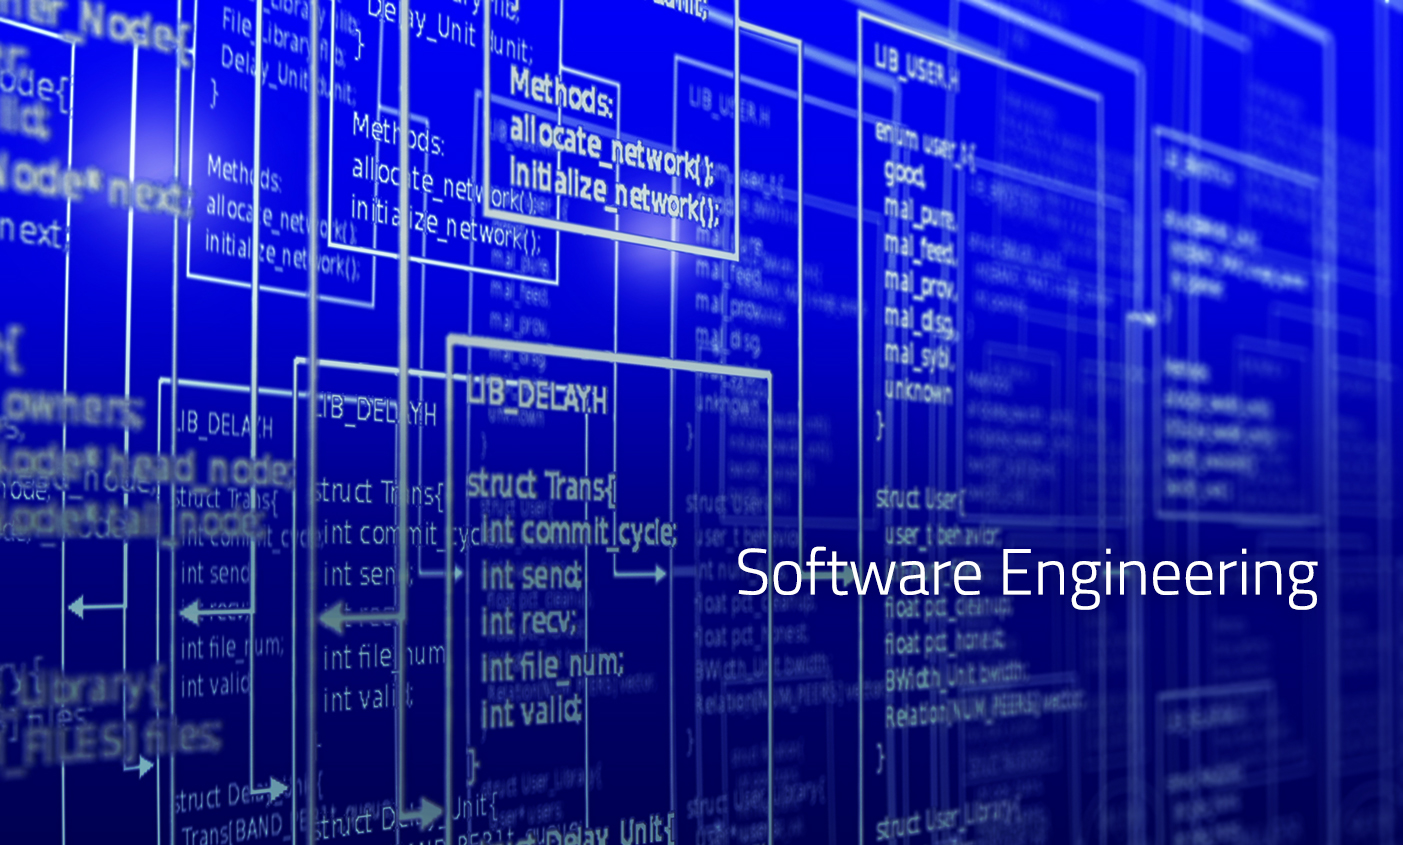 Department of Software Engineering